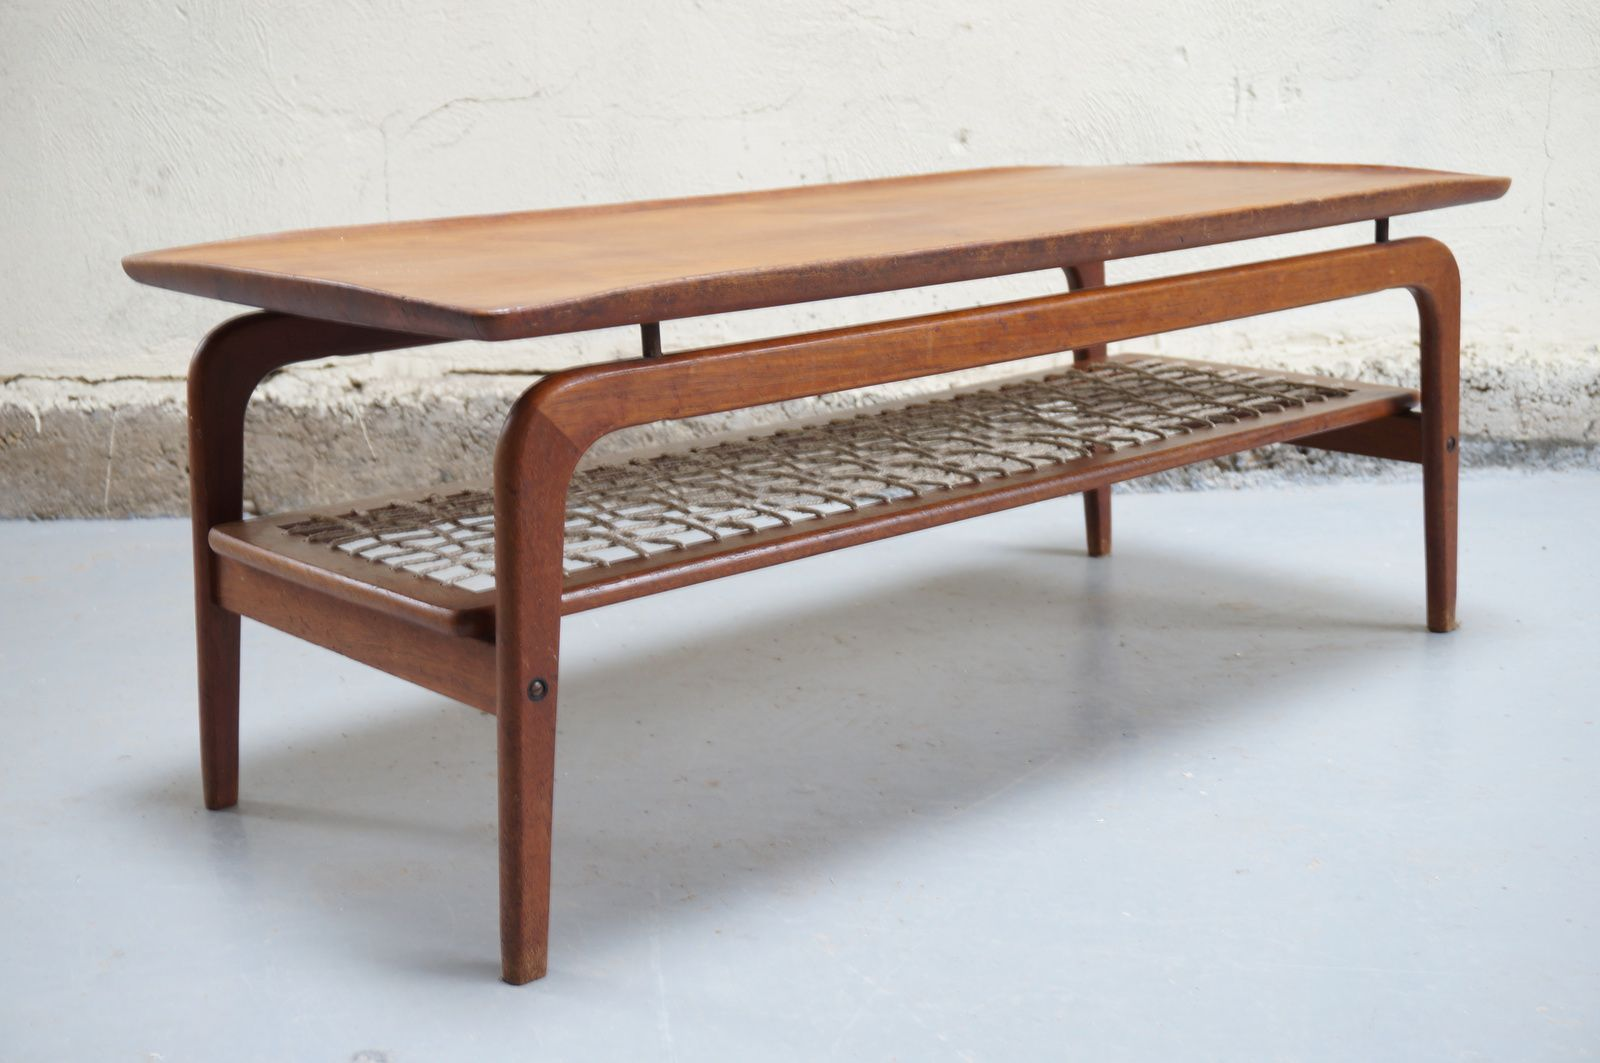 Table basse scandinave de salon danois teck design ann es for Table basse scandinave salon